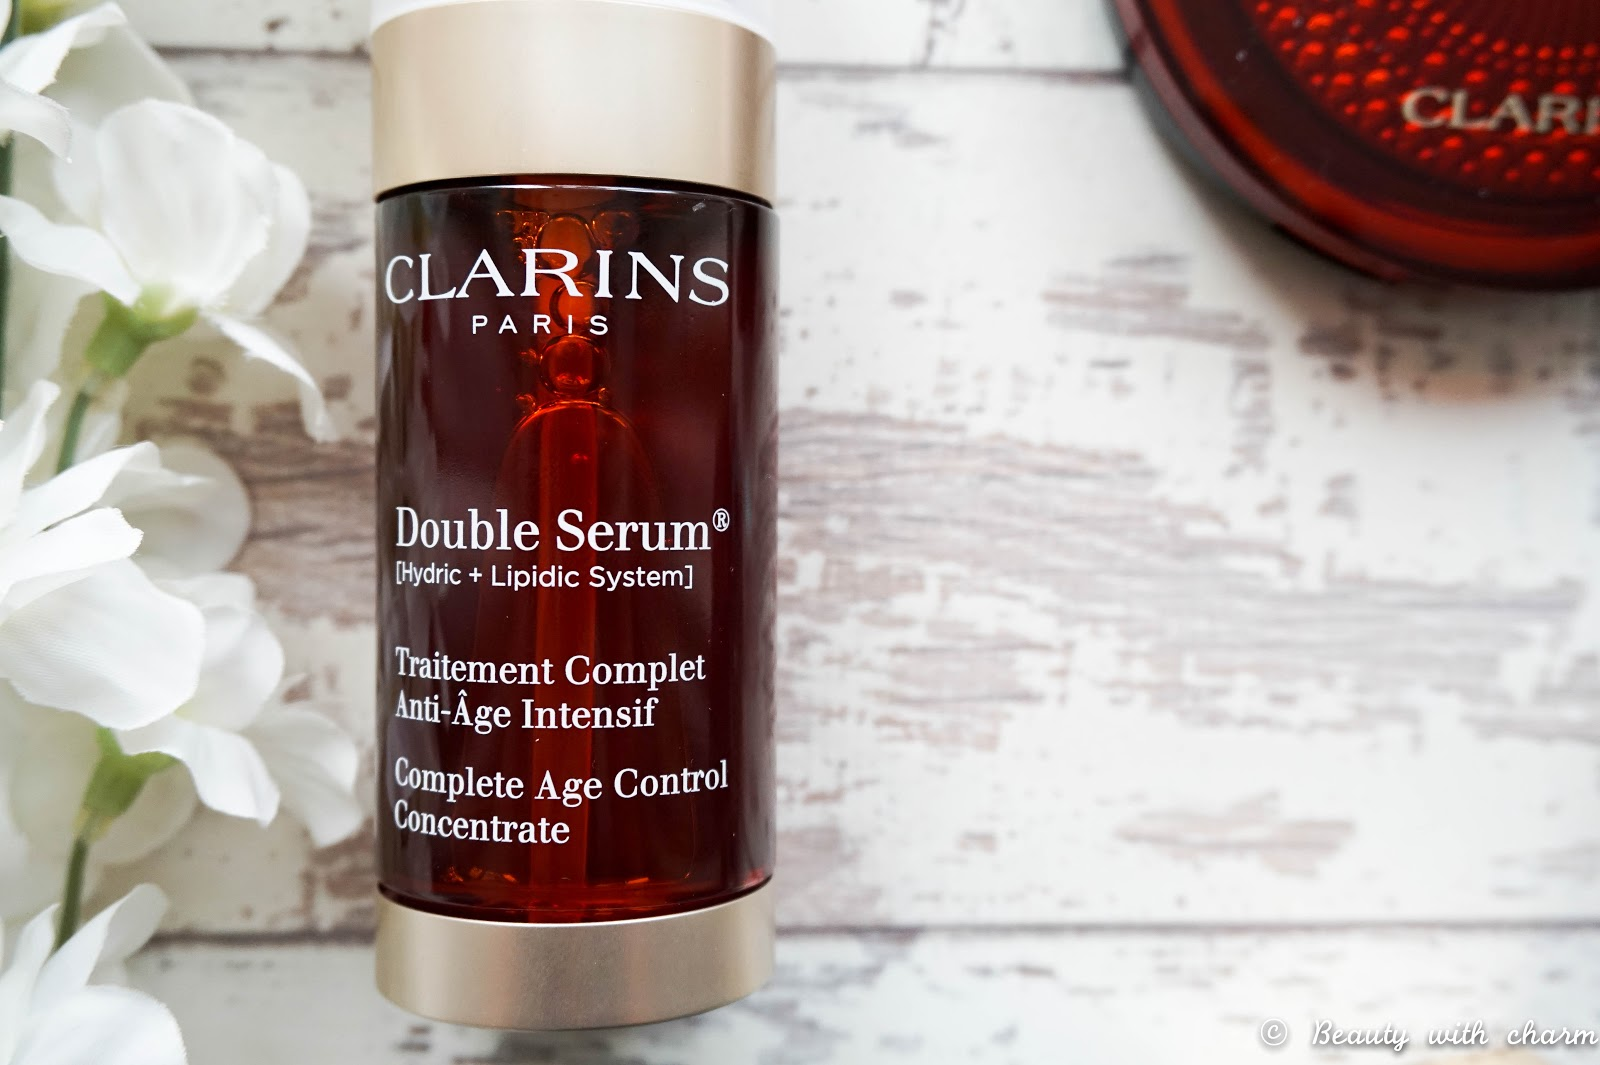 Clarins Aquatic Treasures Summer Collection, Clarins Double Serum